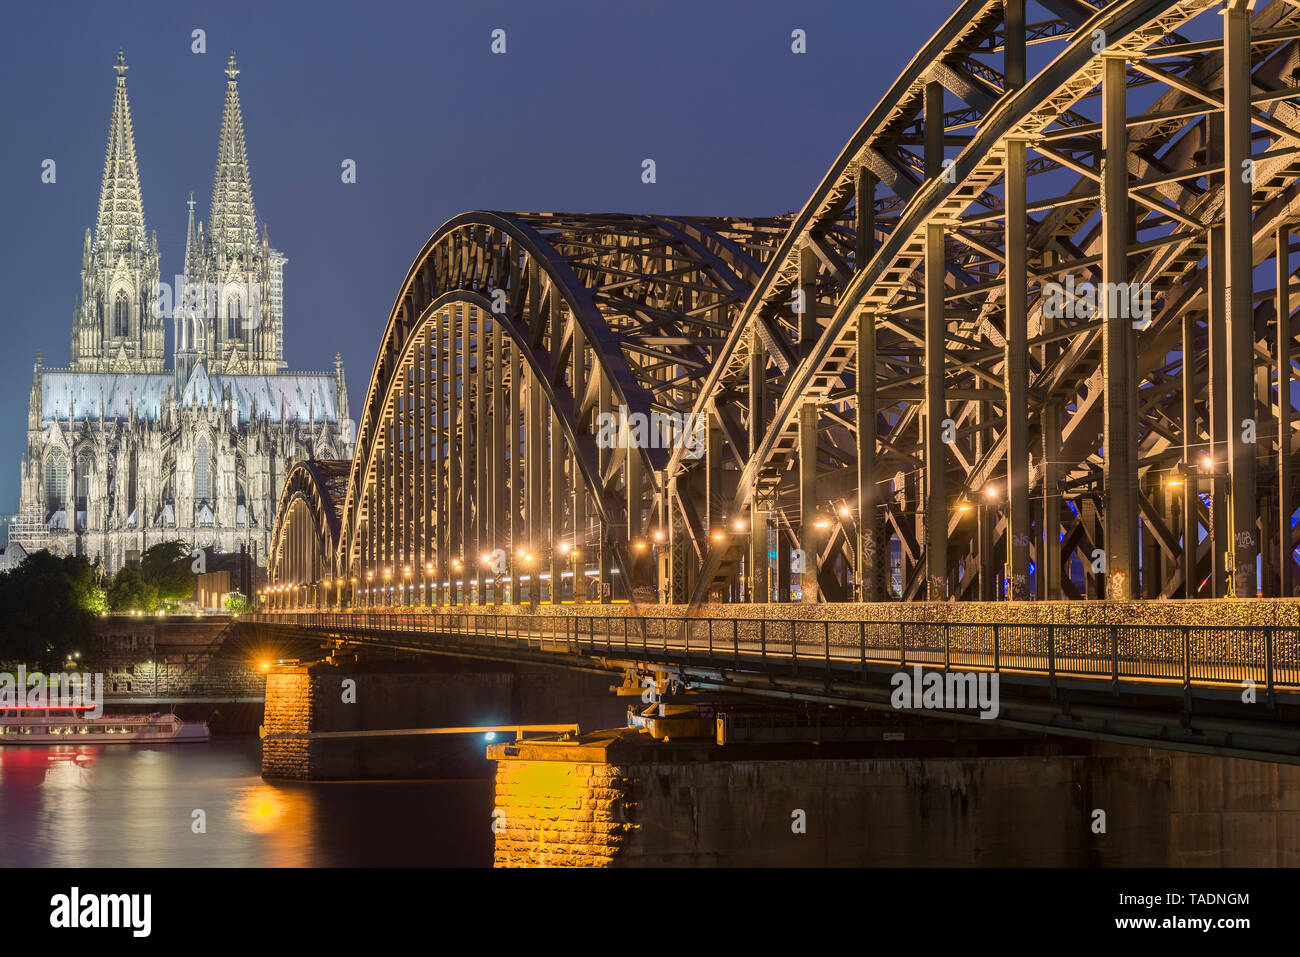 Germany, Cologne, view to lighted Cologne Cathedral with Hohenzollern Bridge in the foreground - Stock Image